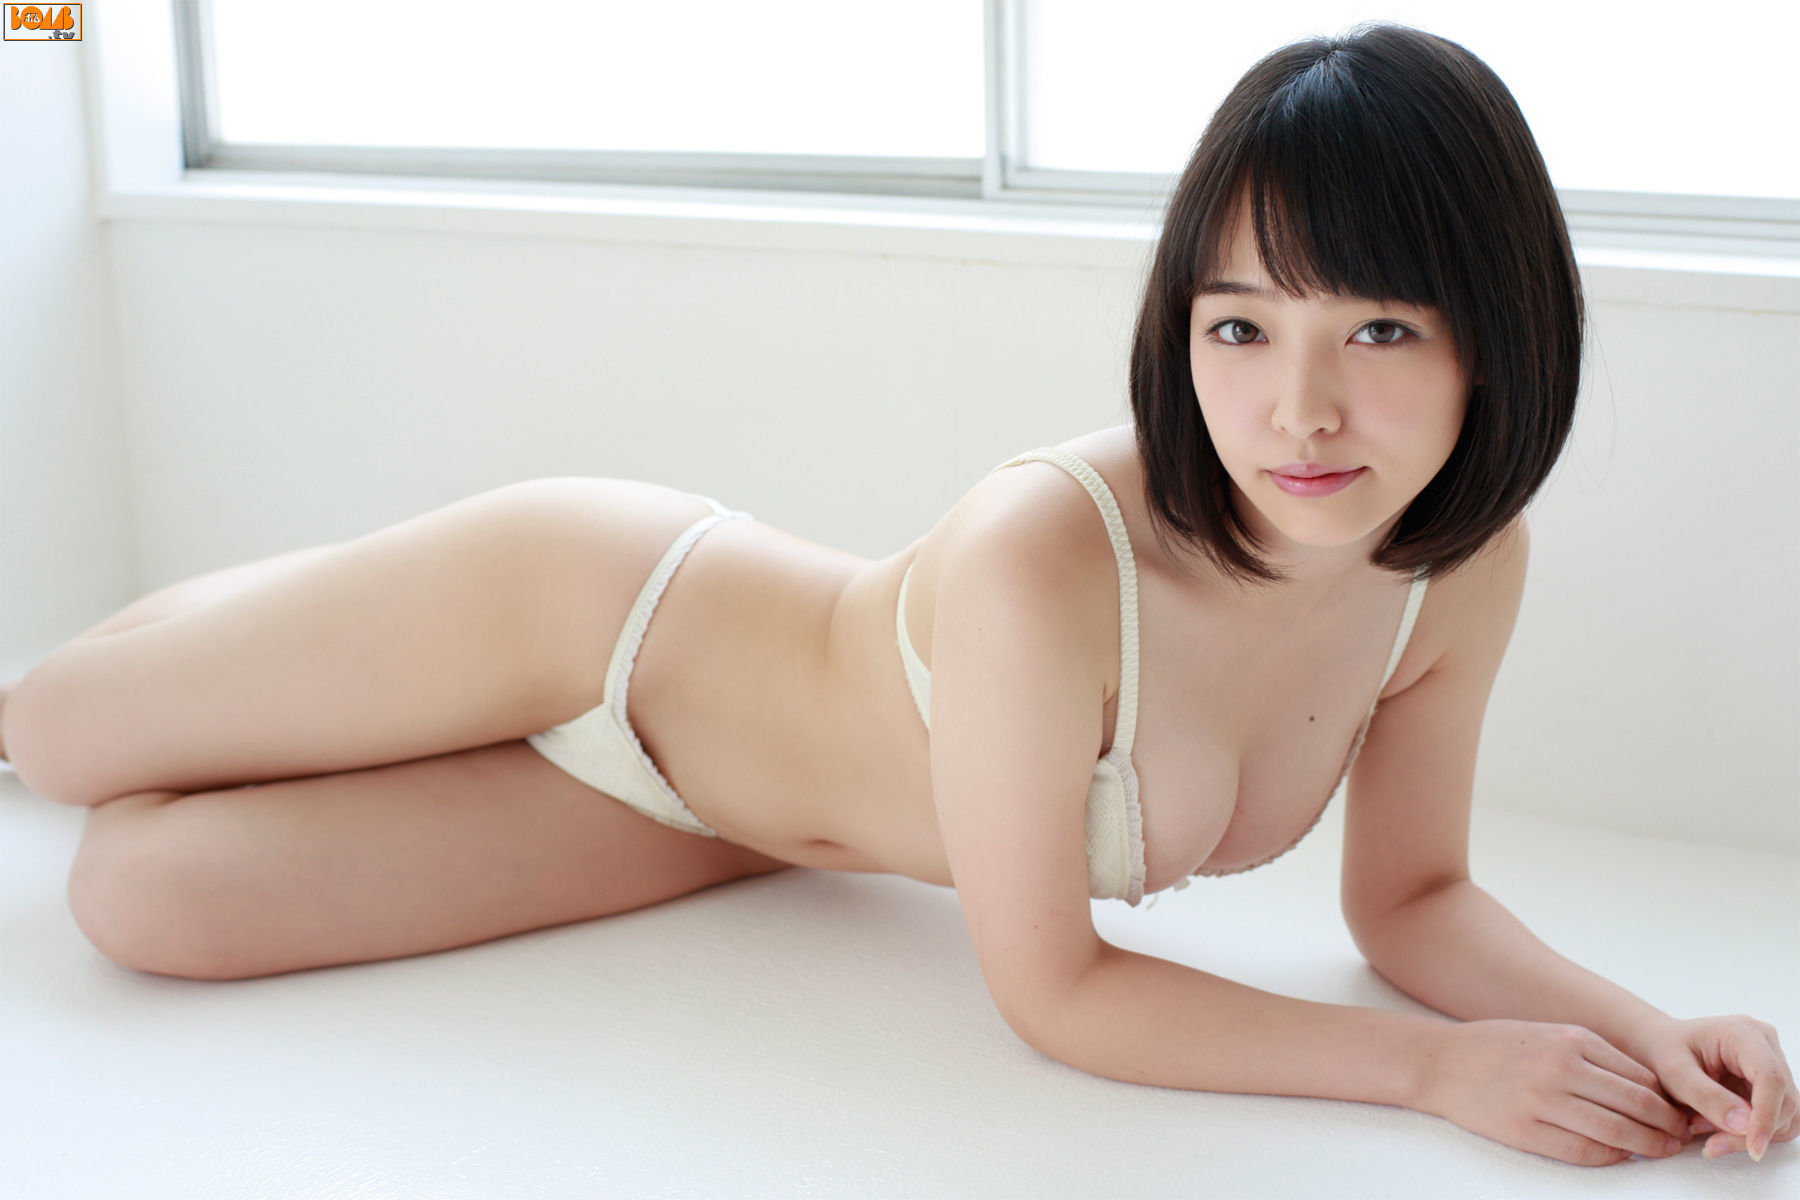 The ultimate swimsuit gravure for the next generation030